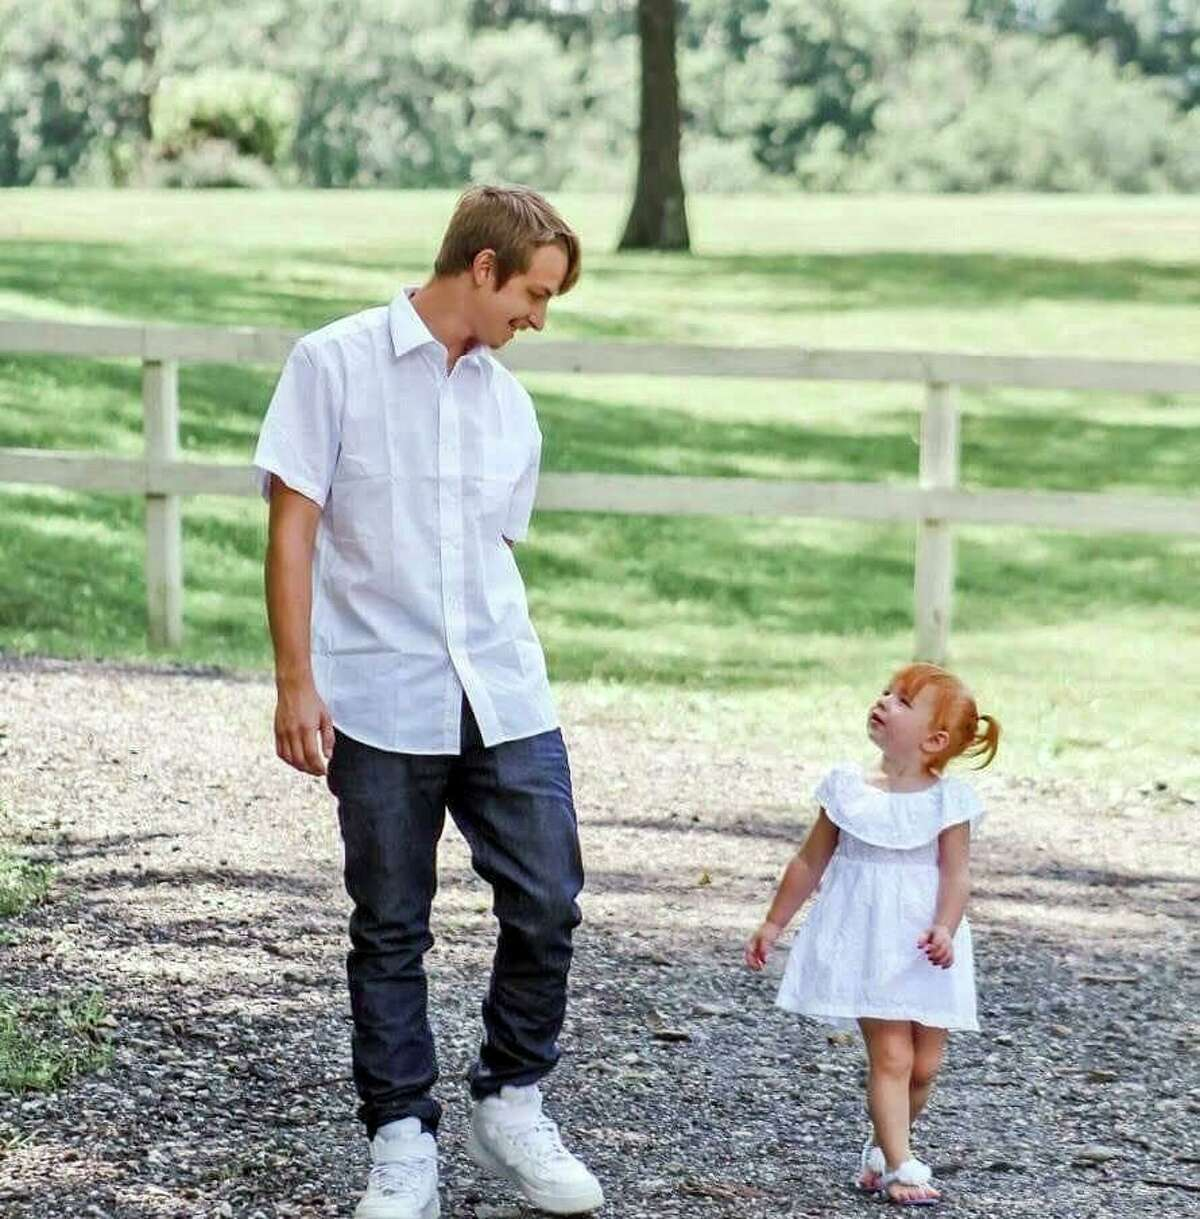 Brian Cody Waldron with his daughter Aubree two weeks before he died of an accidental overdose on Aug. 10, 2019.